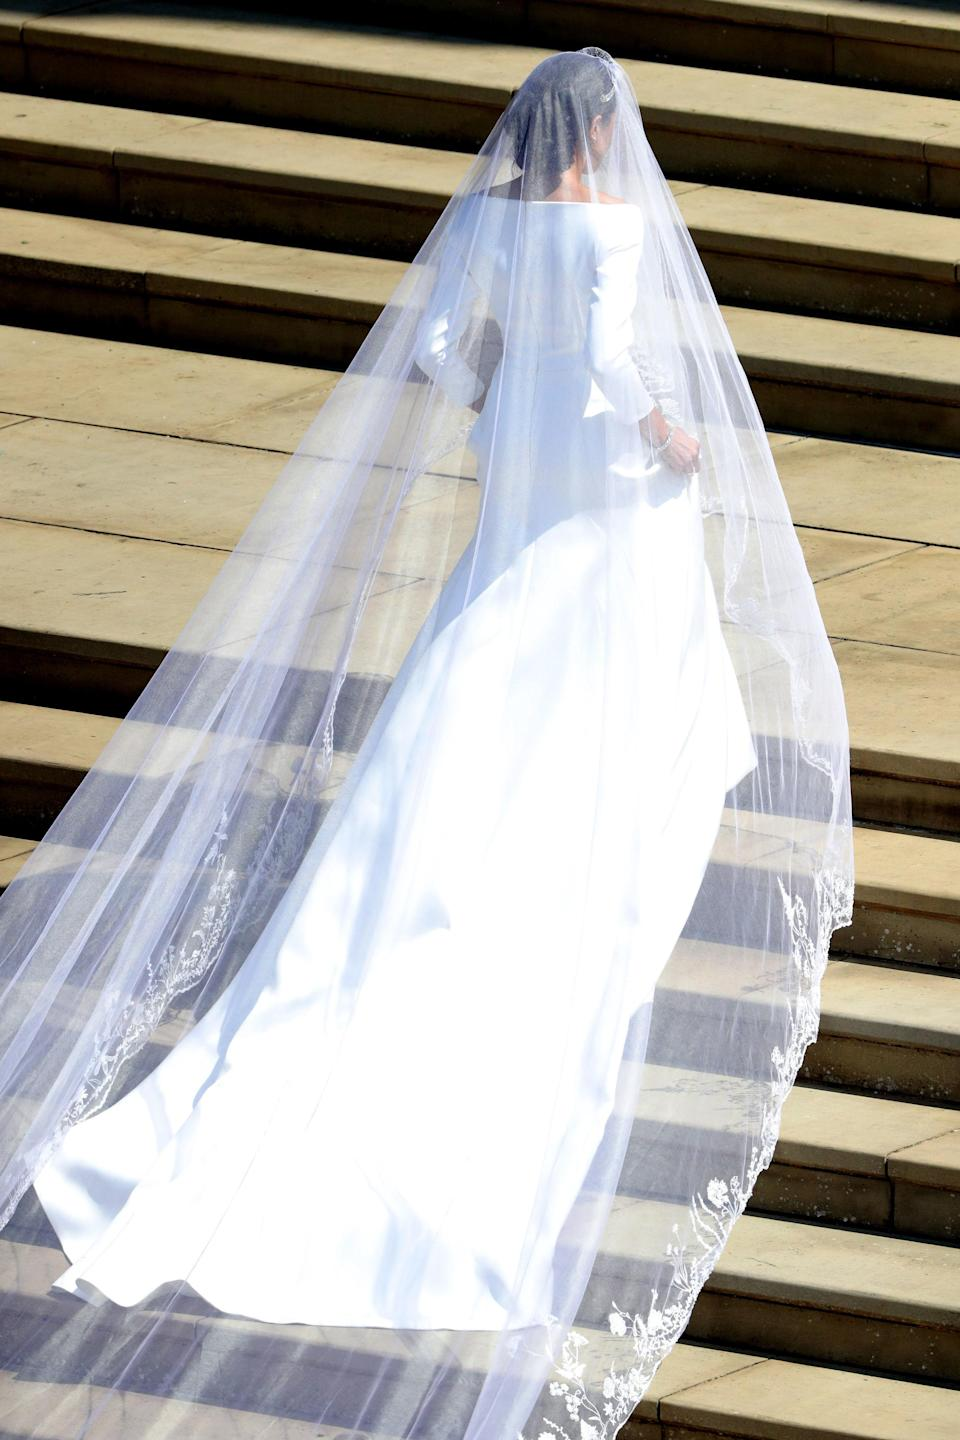 <p>The dress is simple and classic, with a bateau neckline, long sleeves, and decadent train. (Photo: Andrew Matthews/PA Wire) </p>